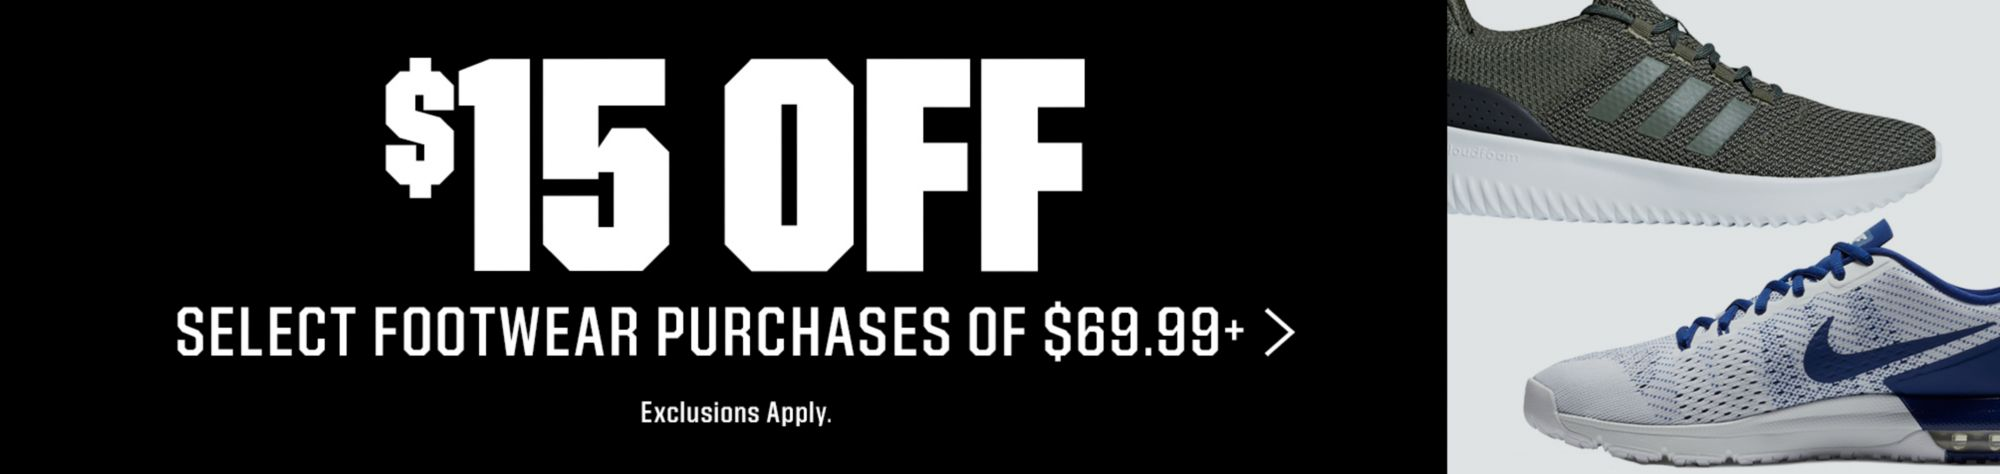 Select Footwear - $15 Off Purchase of $69.99 or More